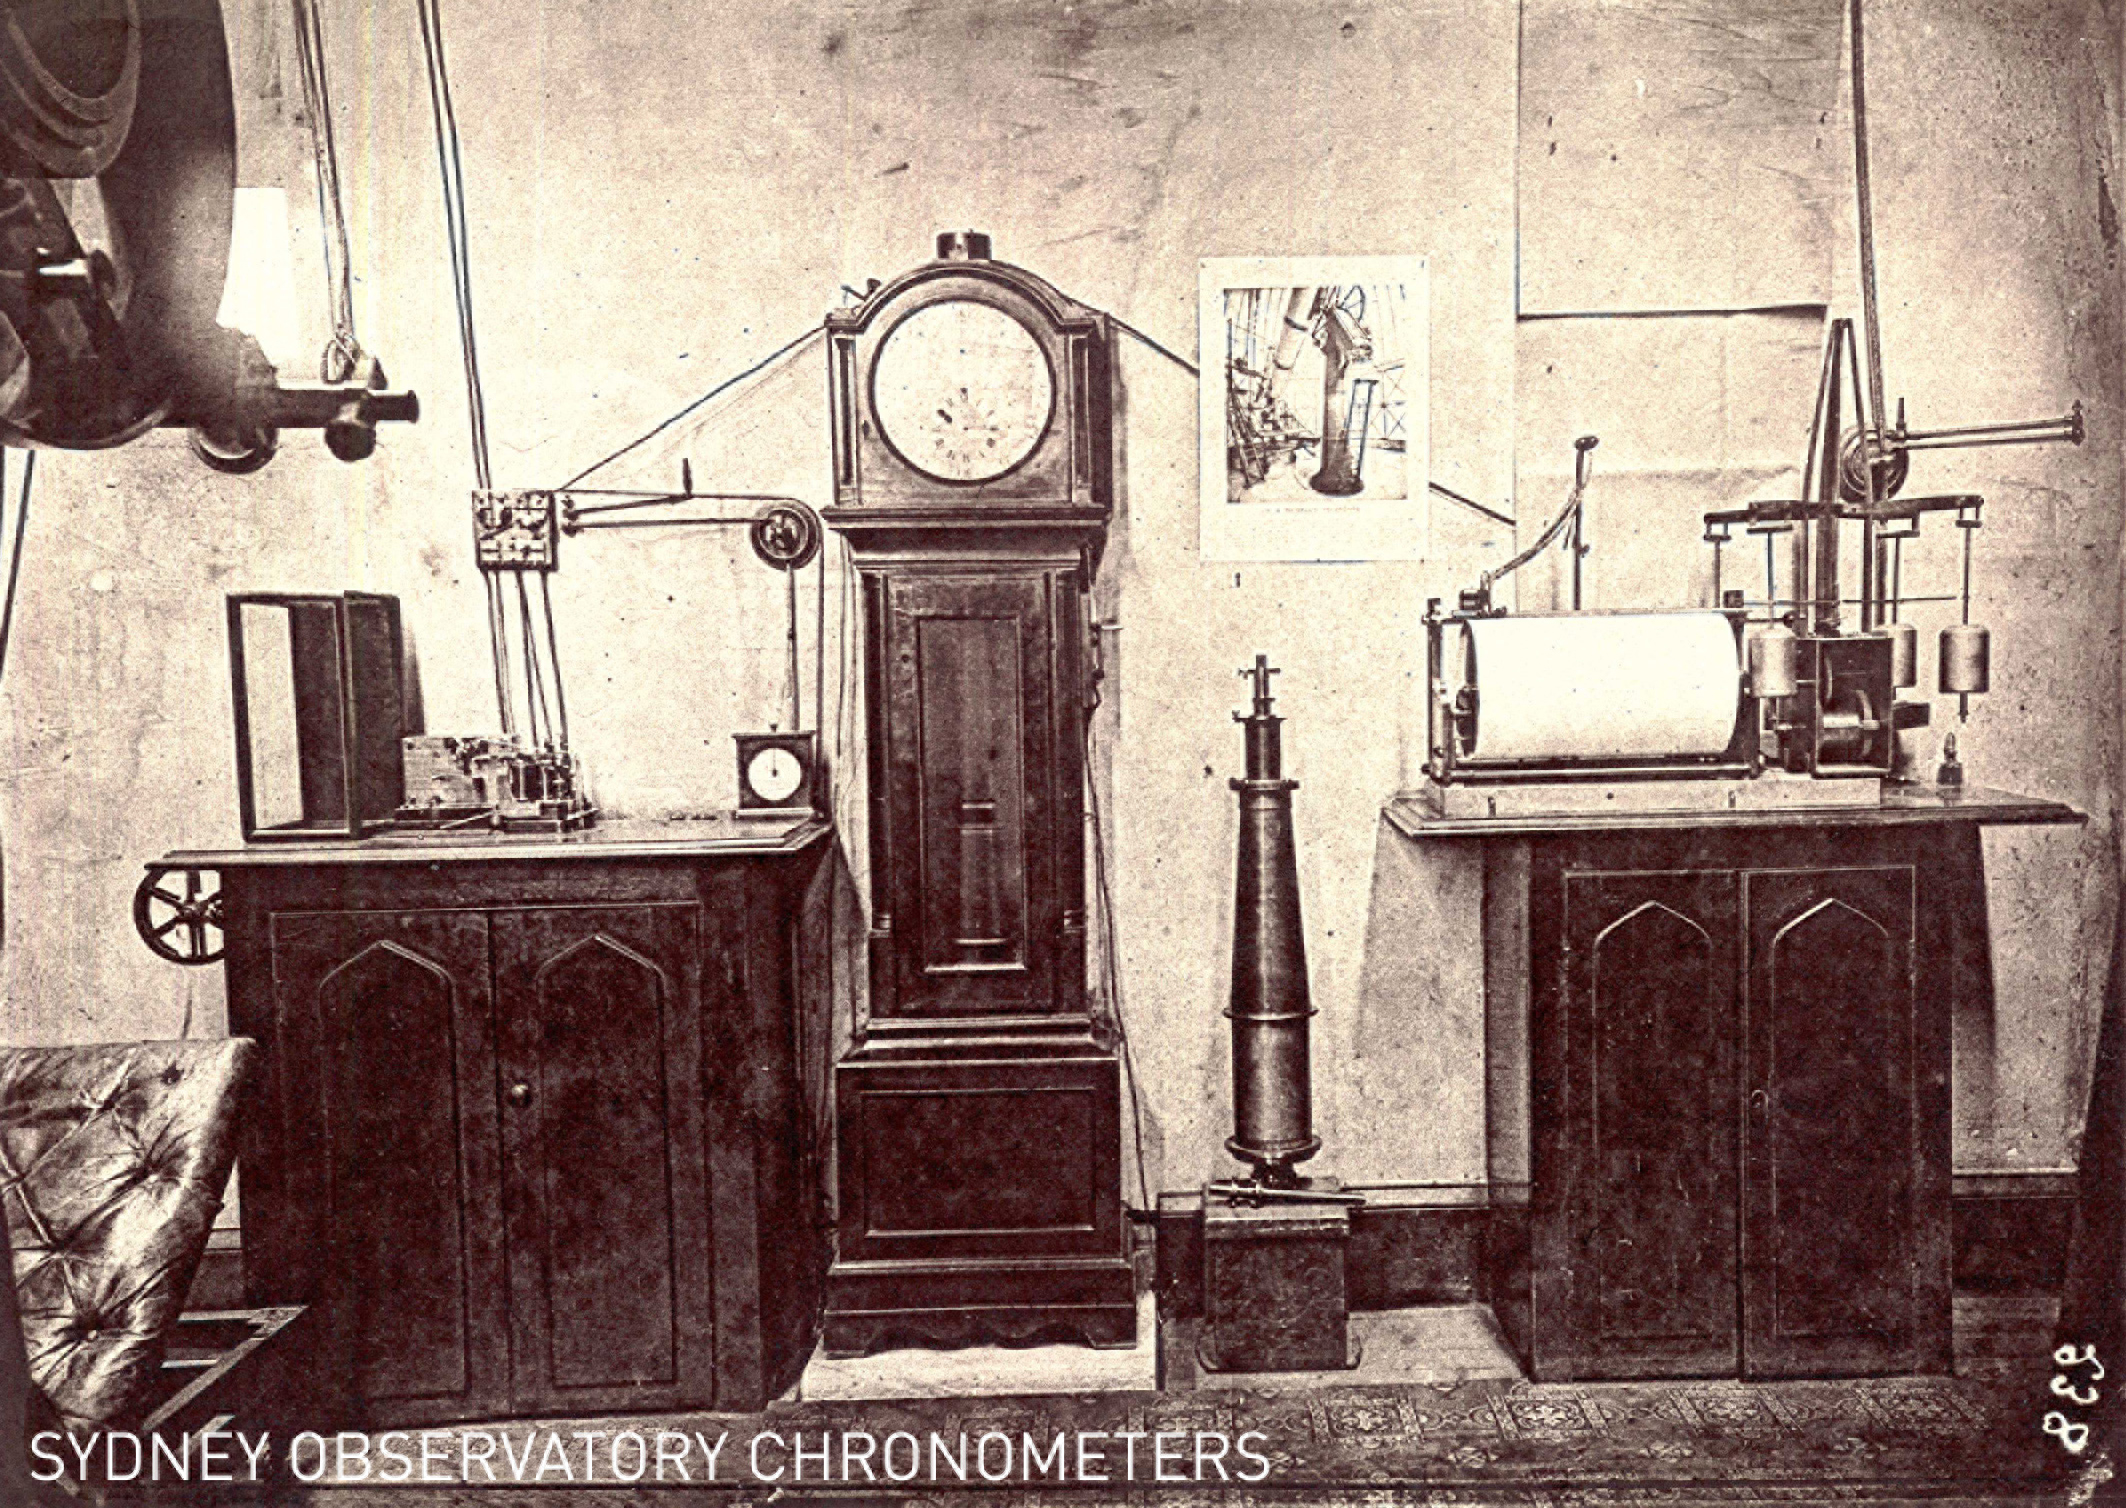 Sydney Observatory electrical clocks and chronometers